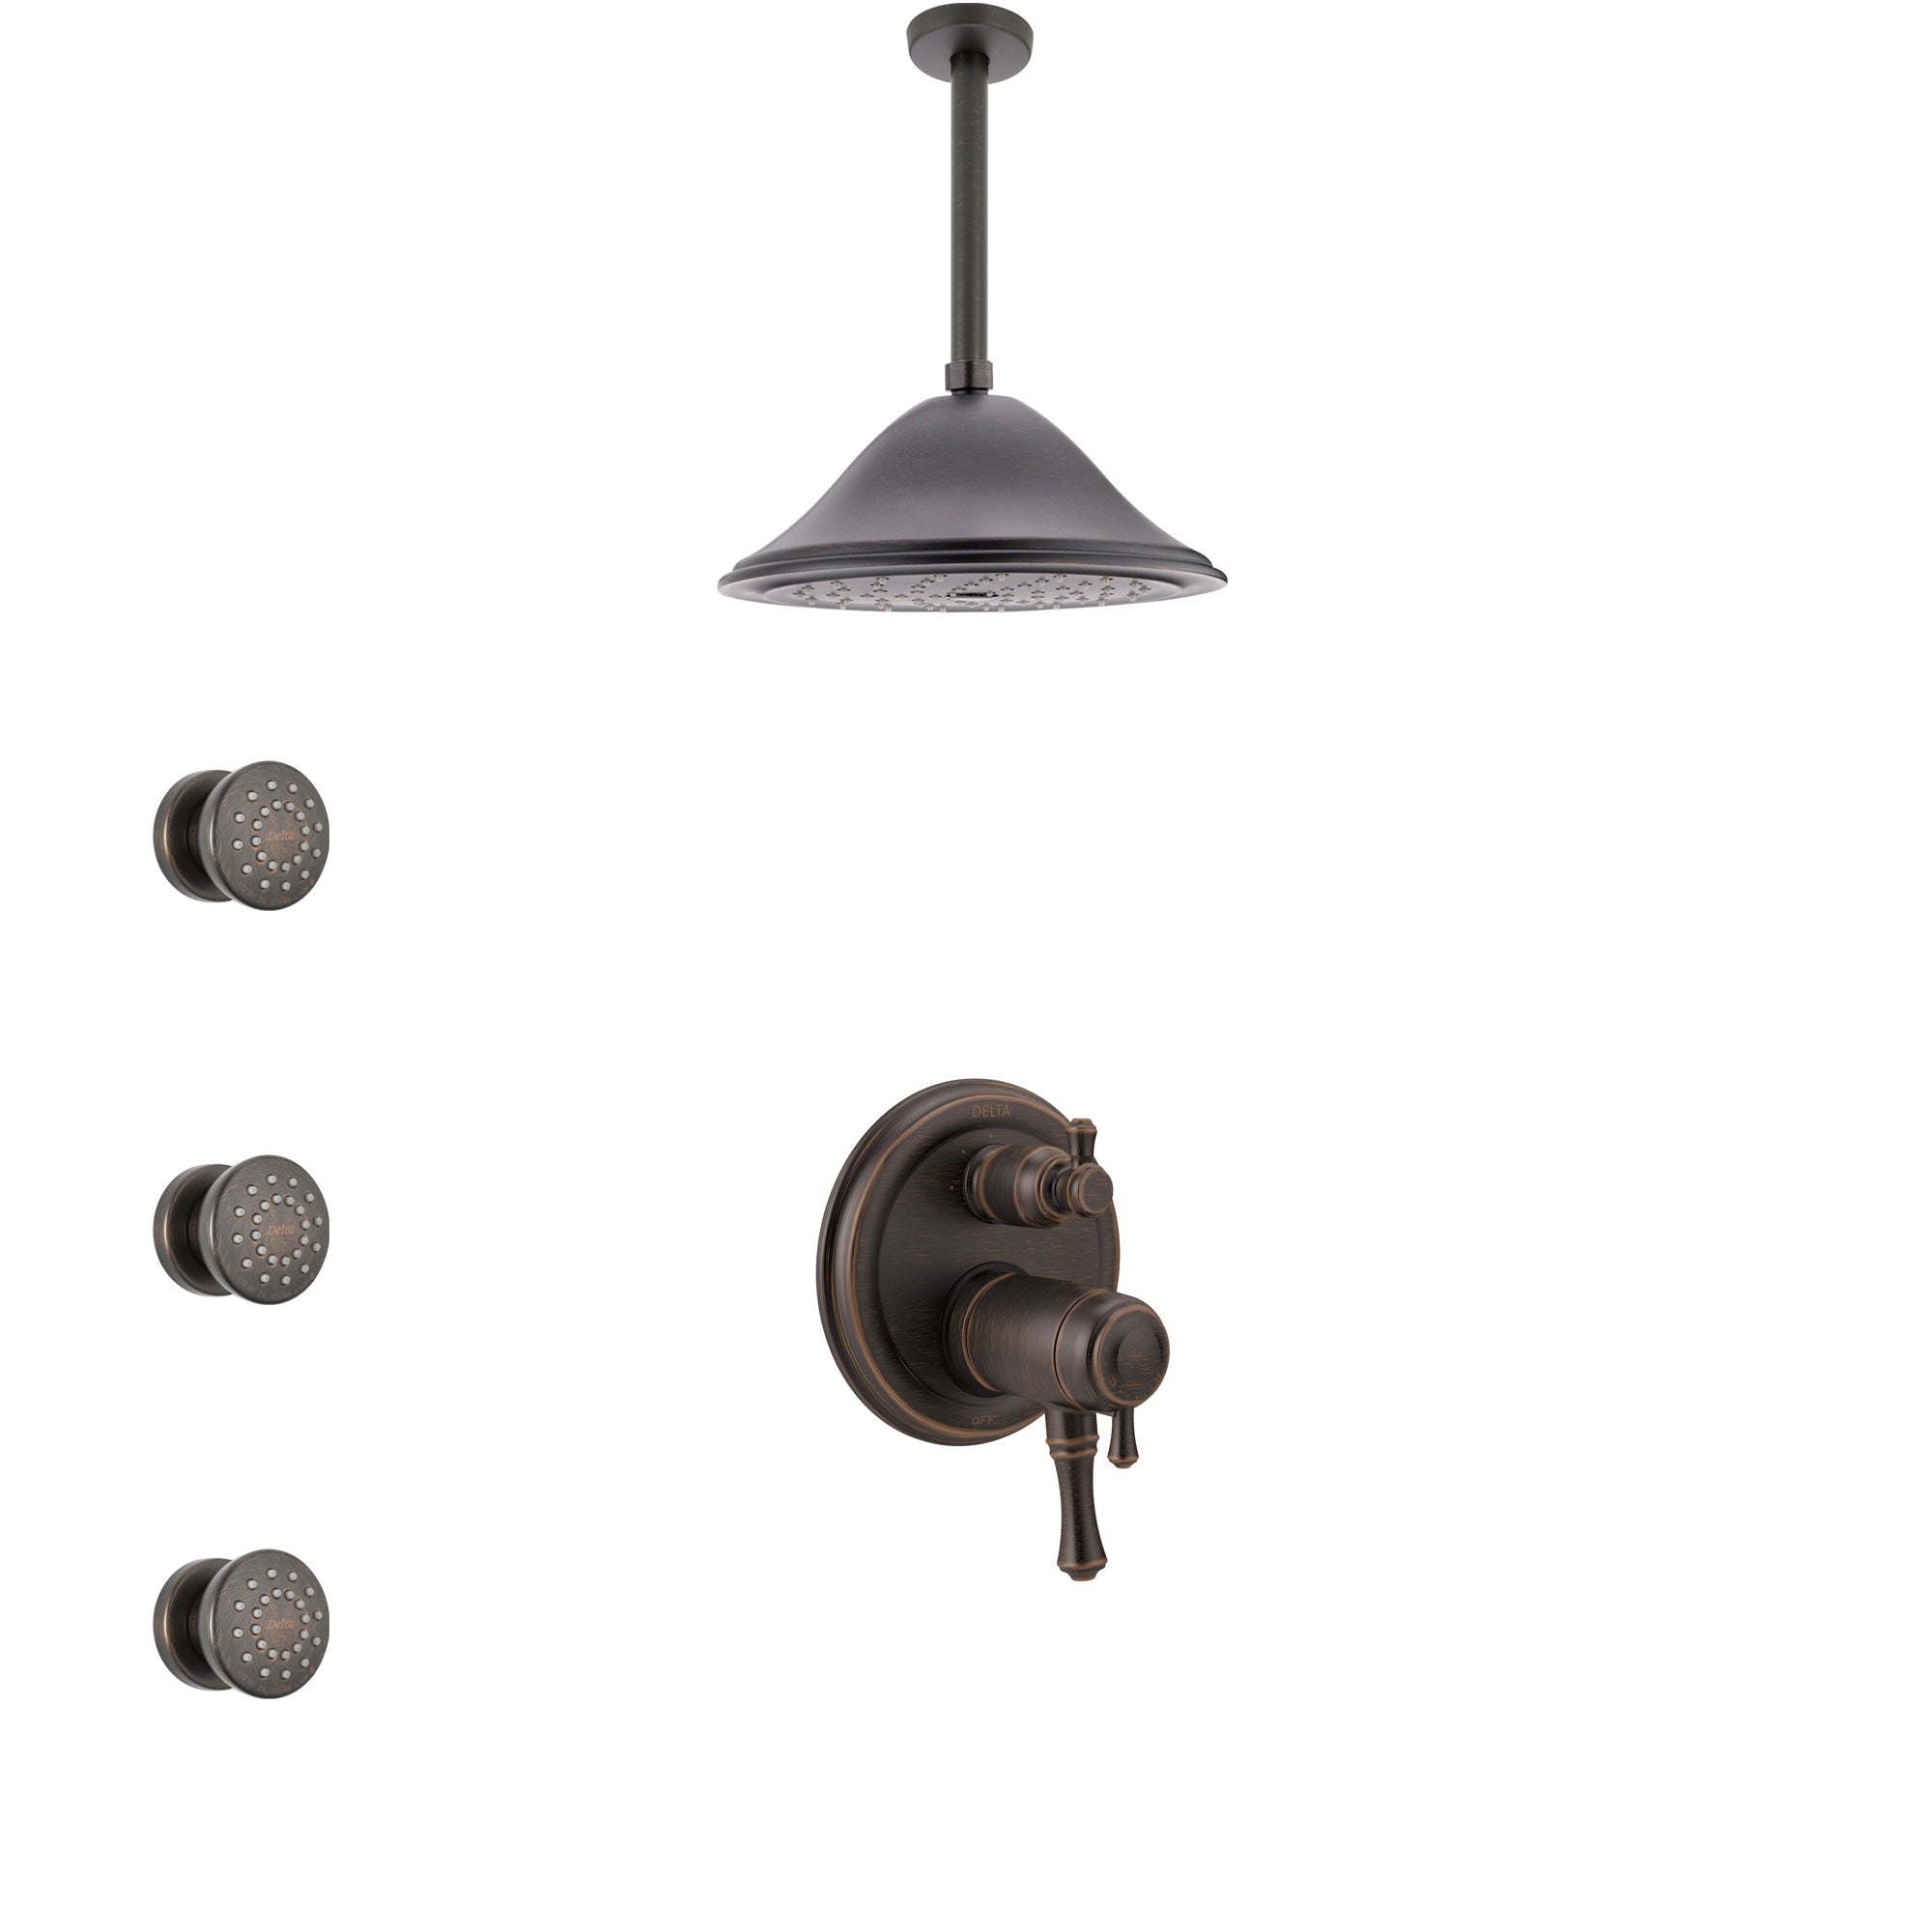 Delta Cassidy Venetian Bronze Integrated Diverter Shower System with Dual Thermostatic Control, Ceiling Showerhead, and 3 Body Sprays SS27T897RB4